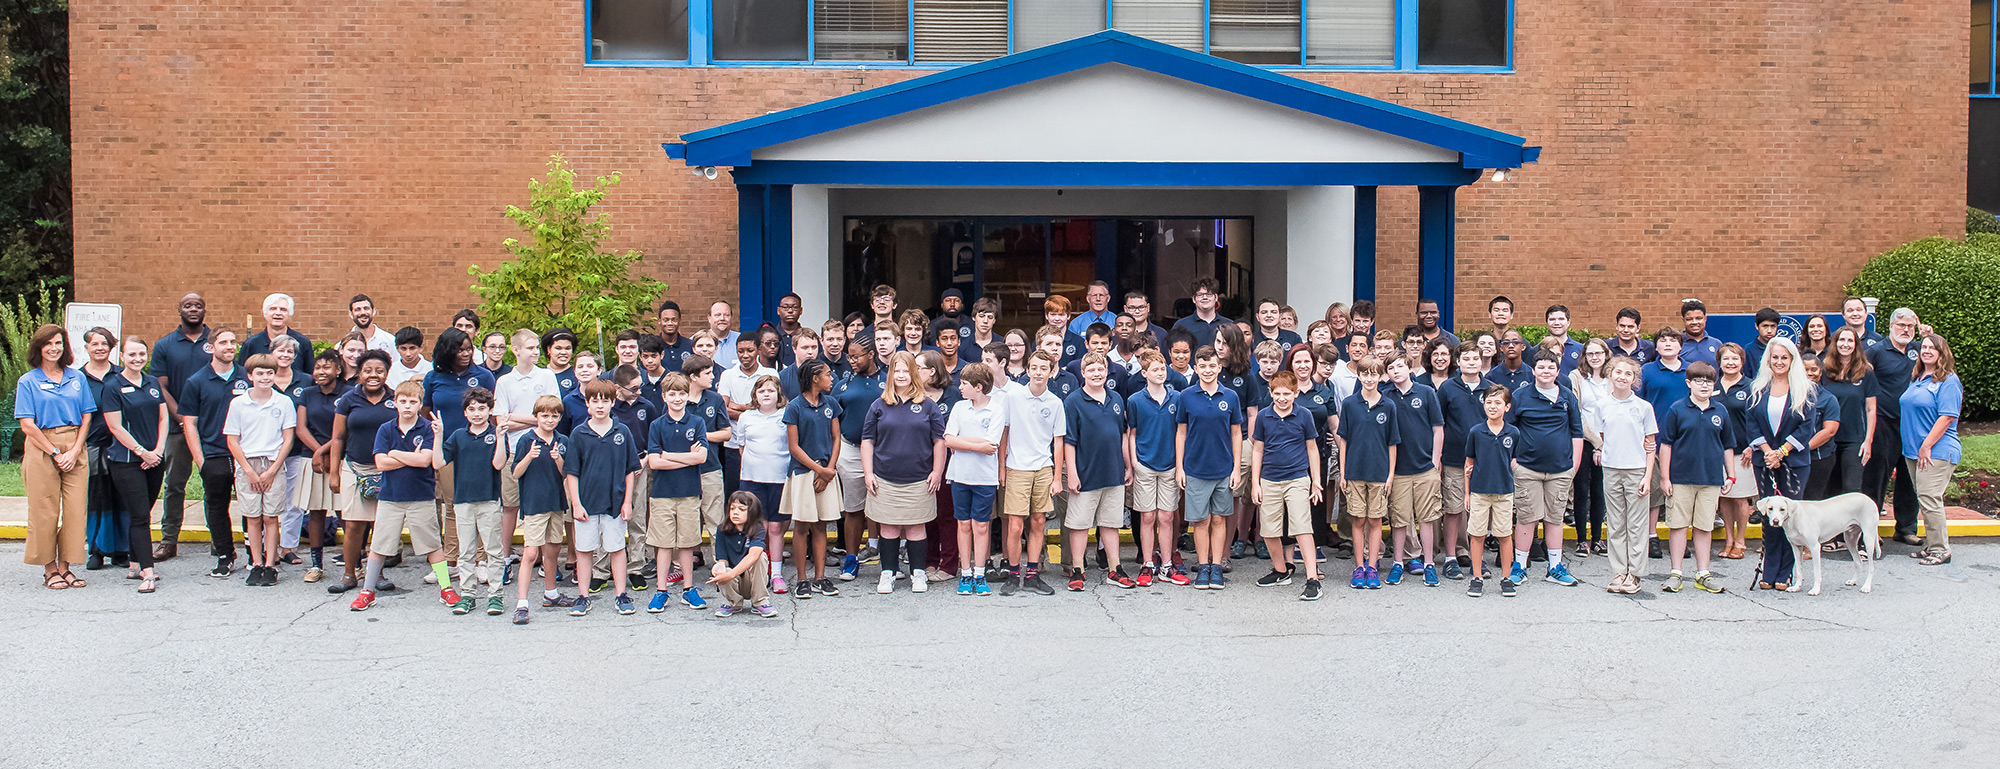 cumberland academy of georgia class picture 2018